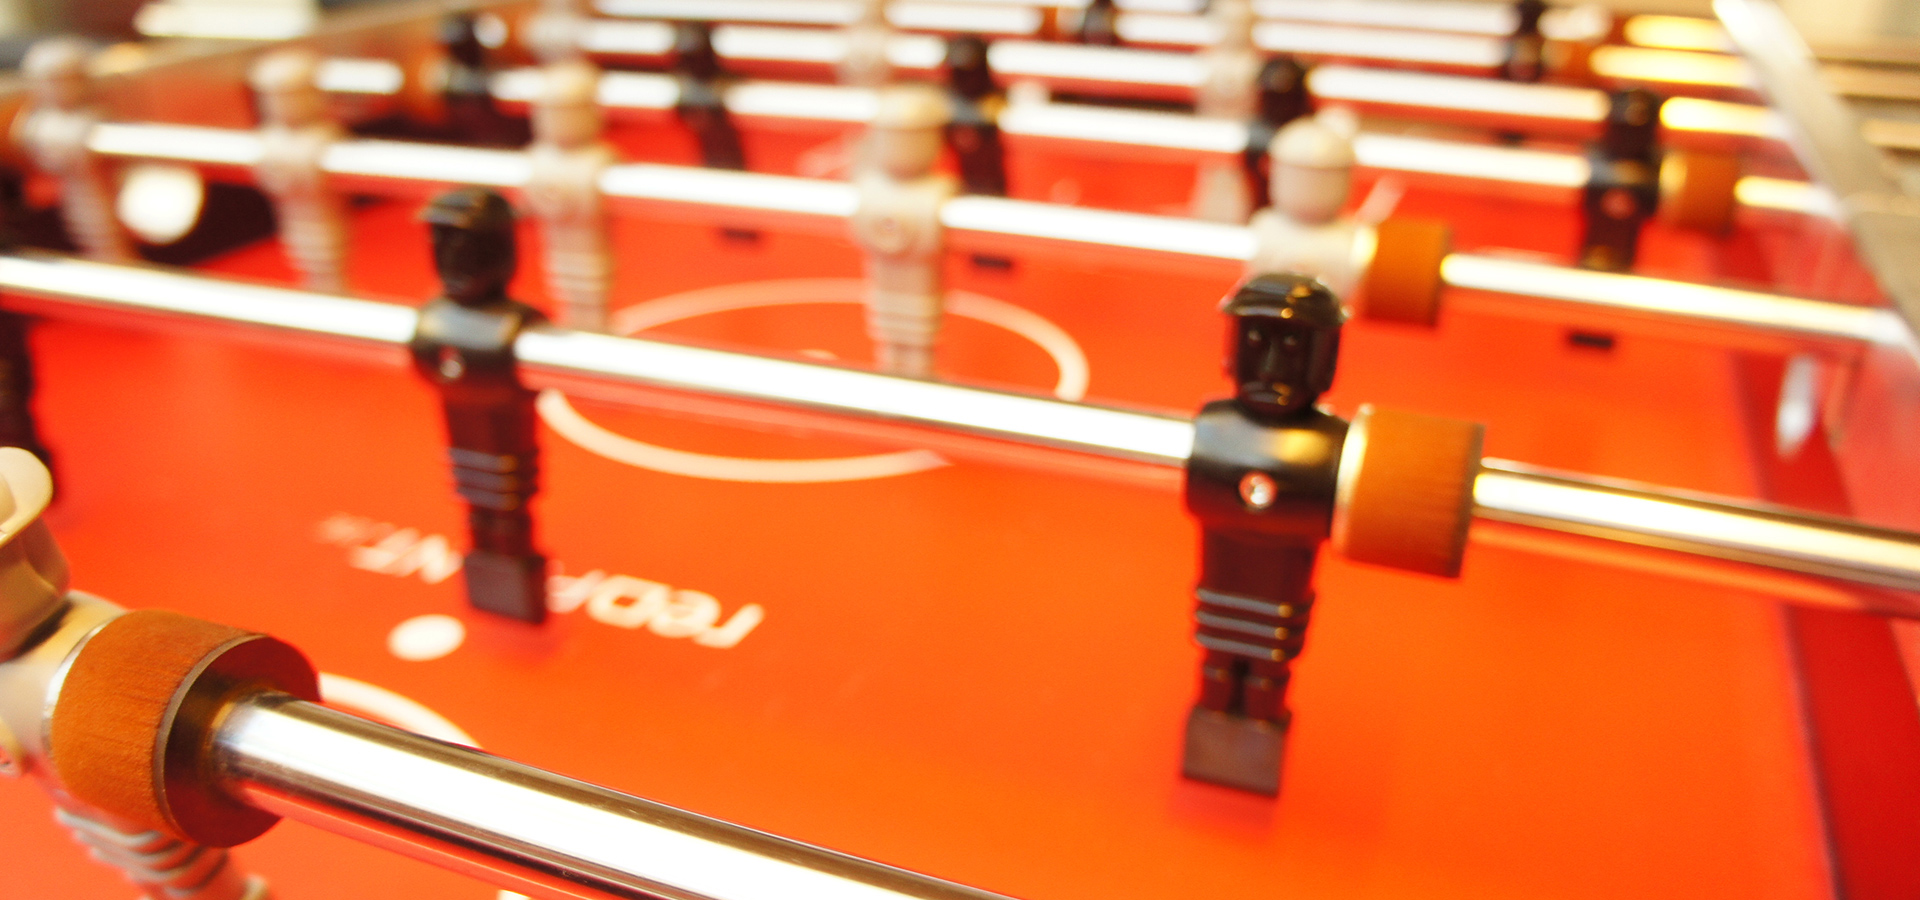 redplant realtime studio table football game invitiation